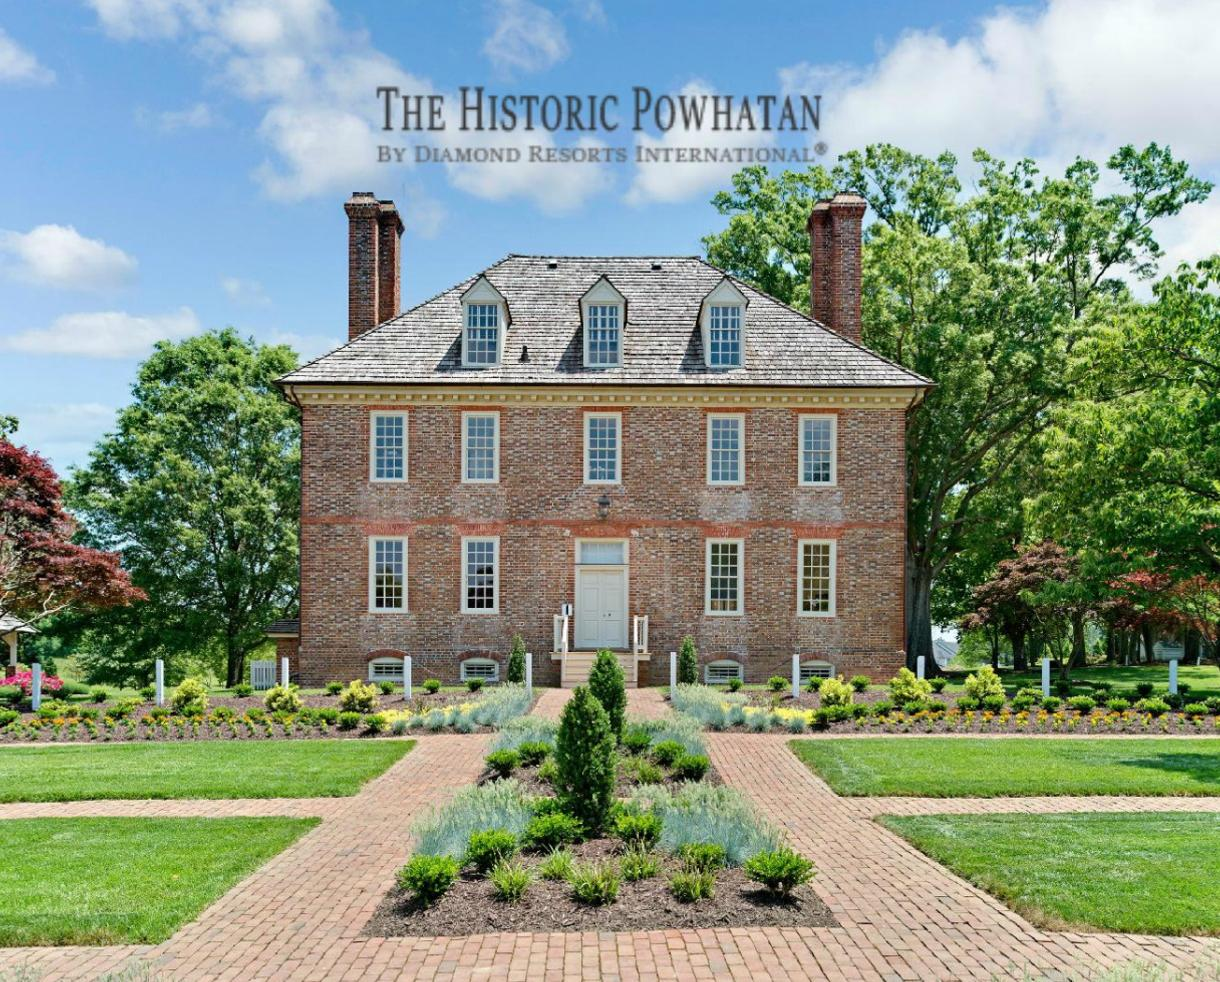 $175+ for 2-Night GETAWAY in a 1 or 2 Bedroom Condo at The Historic Powhatan Resort in Williamsburg, VA (Up to 65% Off)